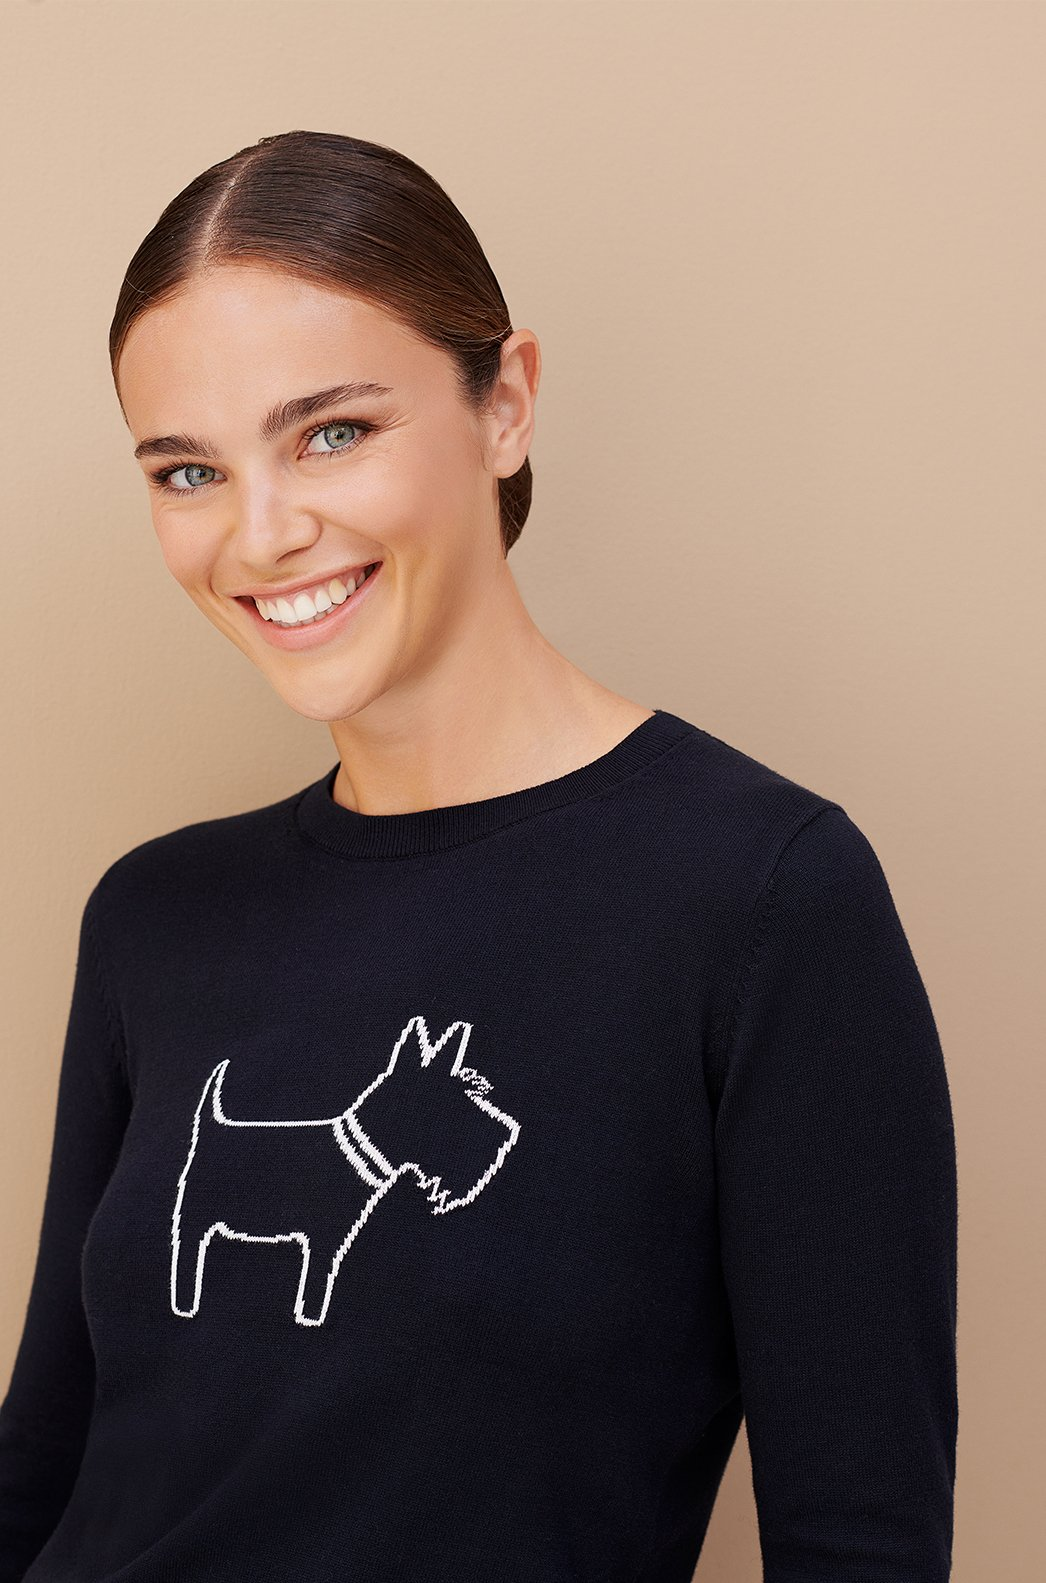 Model wears a novelty jumper featuring a dog from Hobbs.